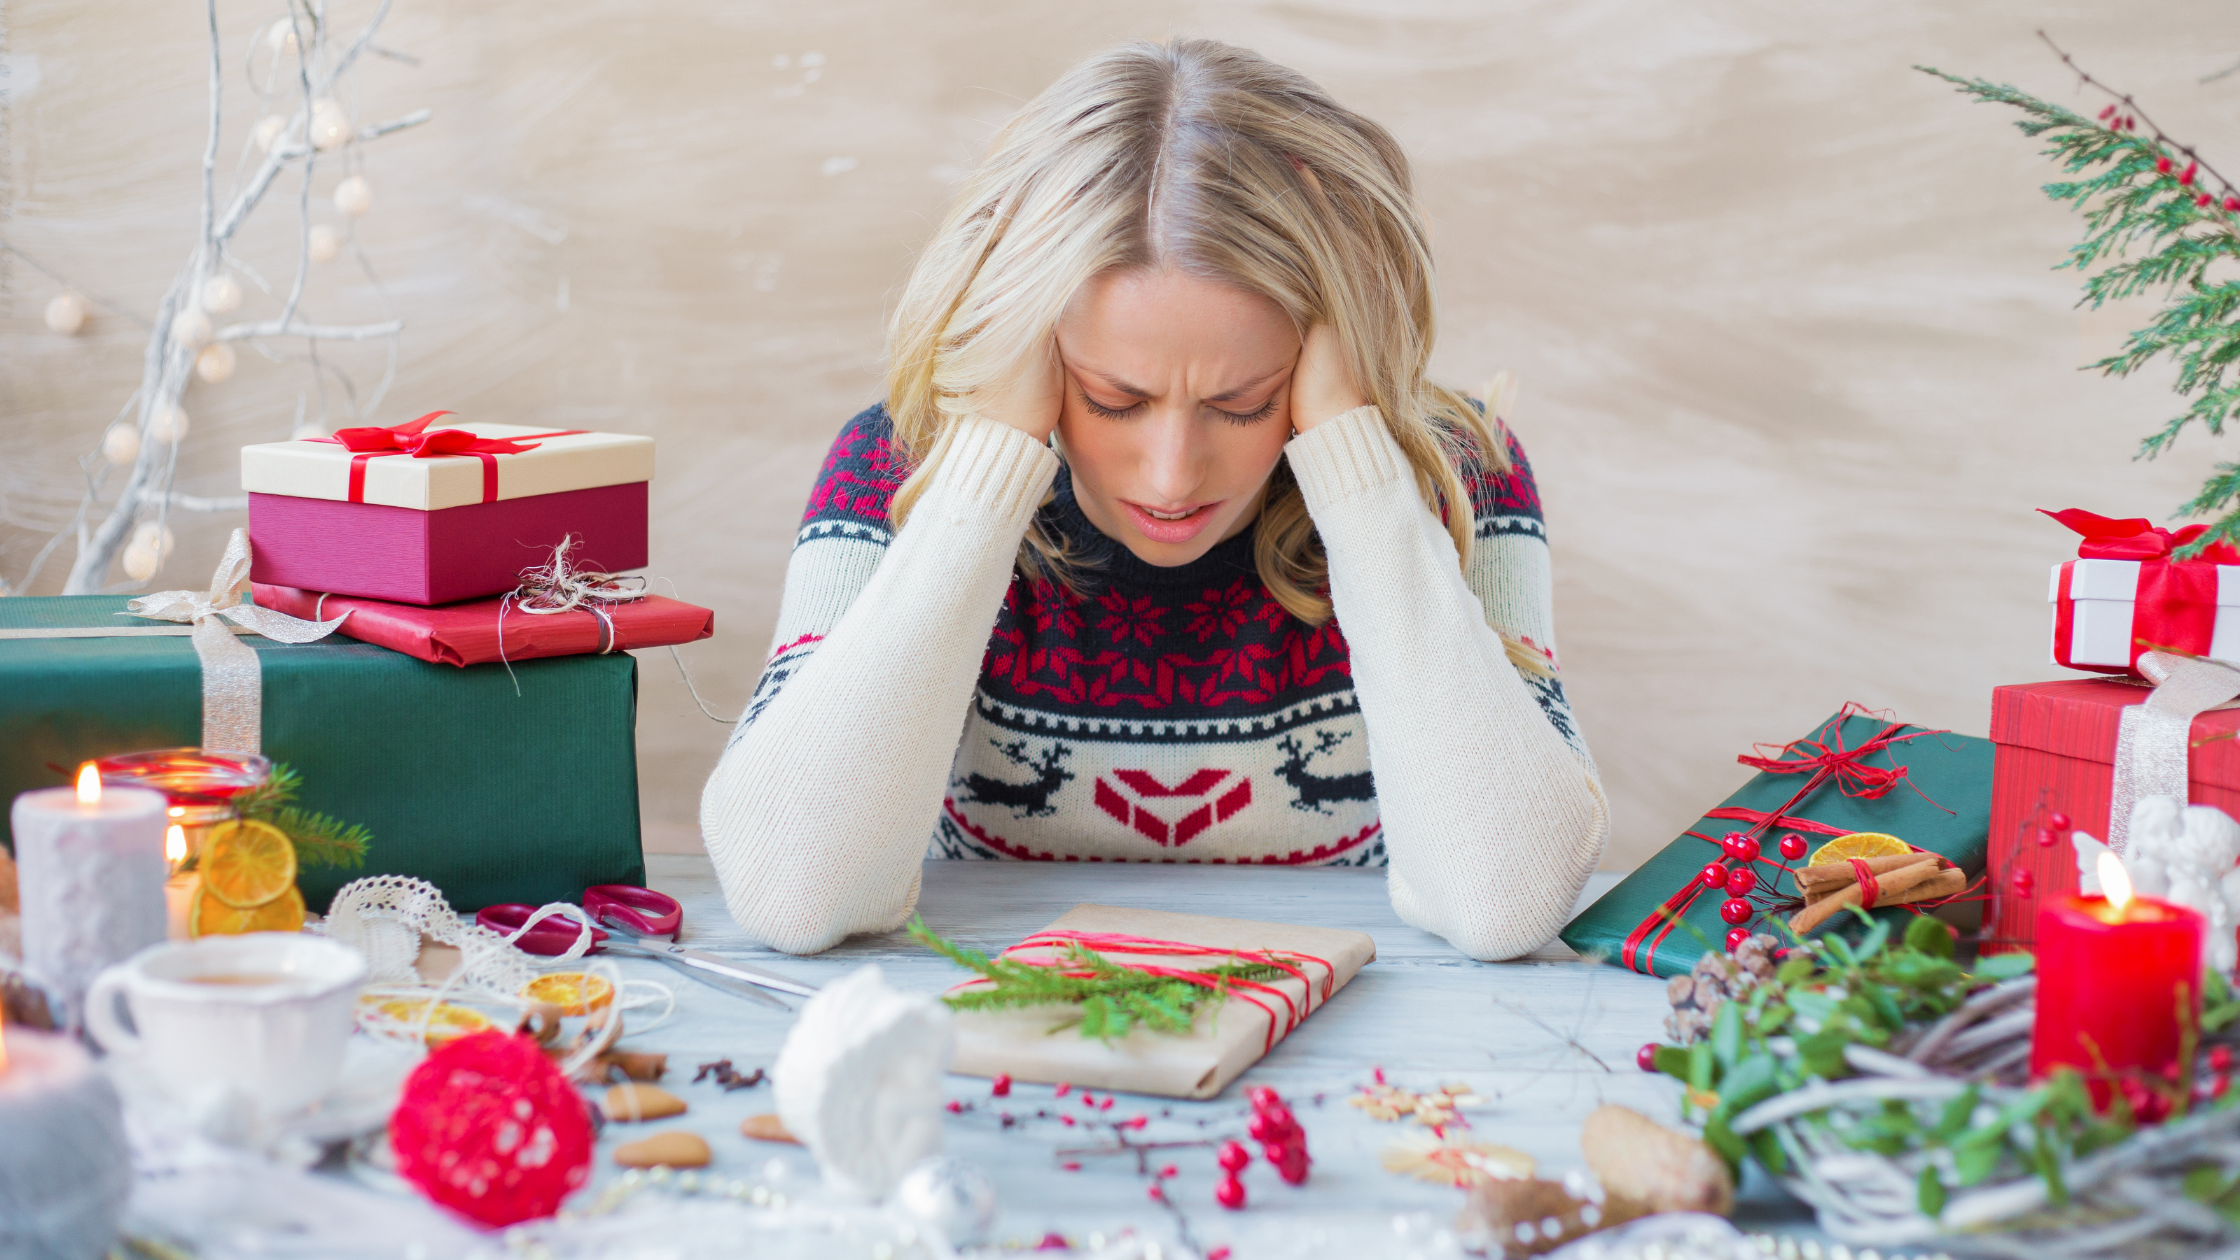 Woman stressing about Christmas with her head in her hands as she attempts to wrap Christmas gifts.